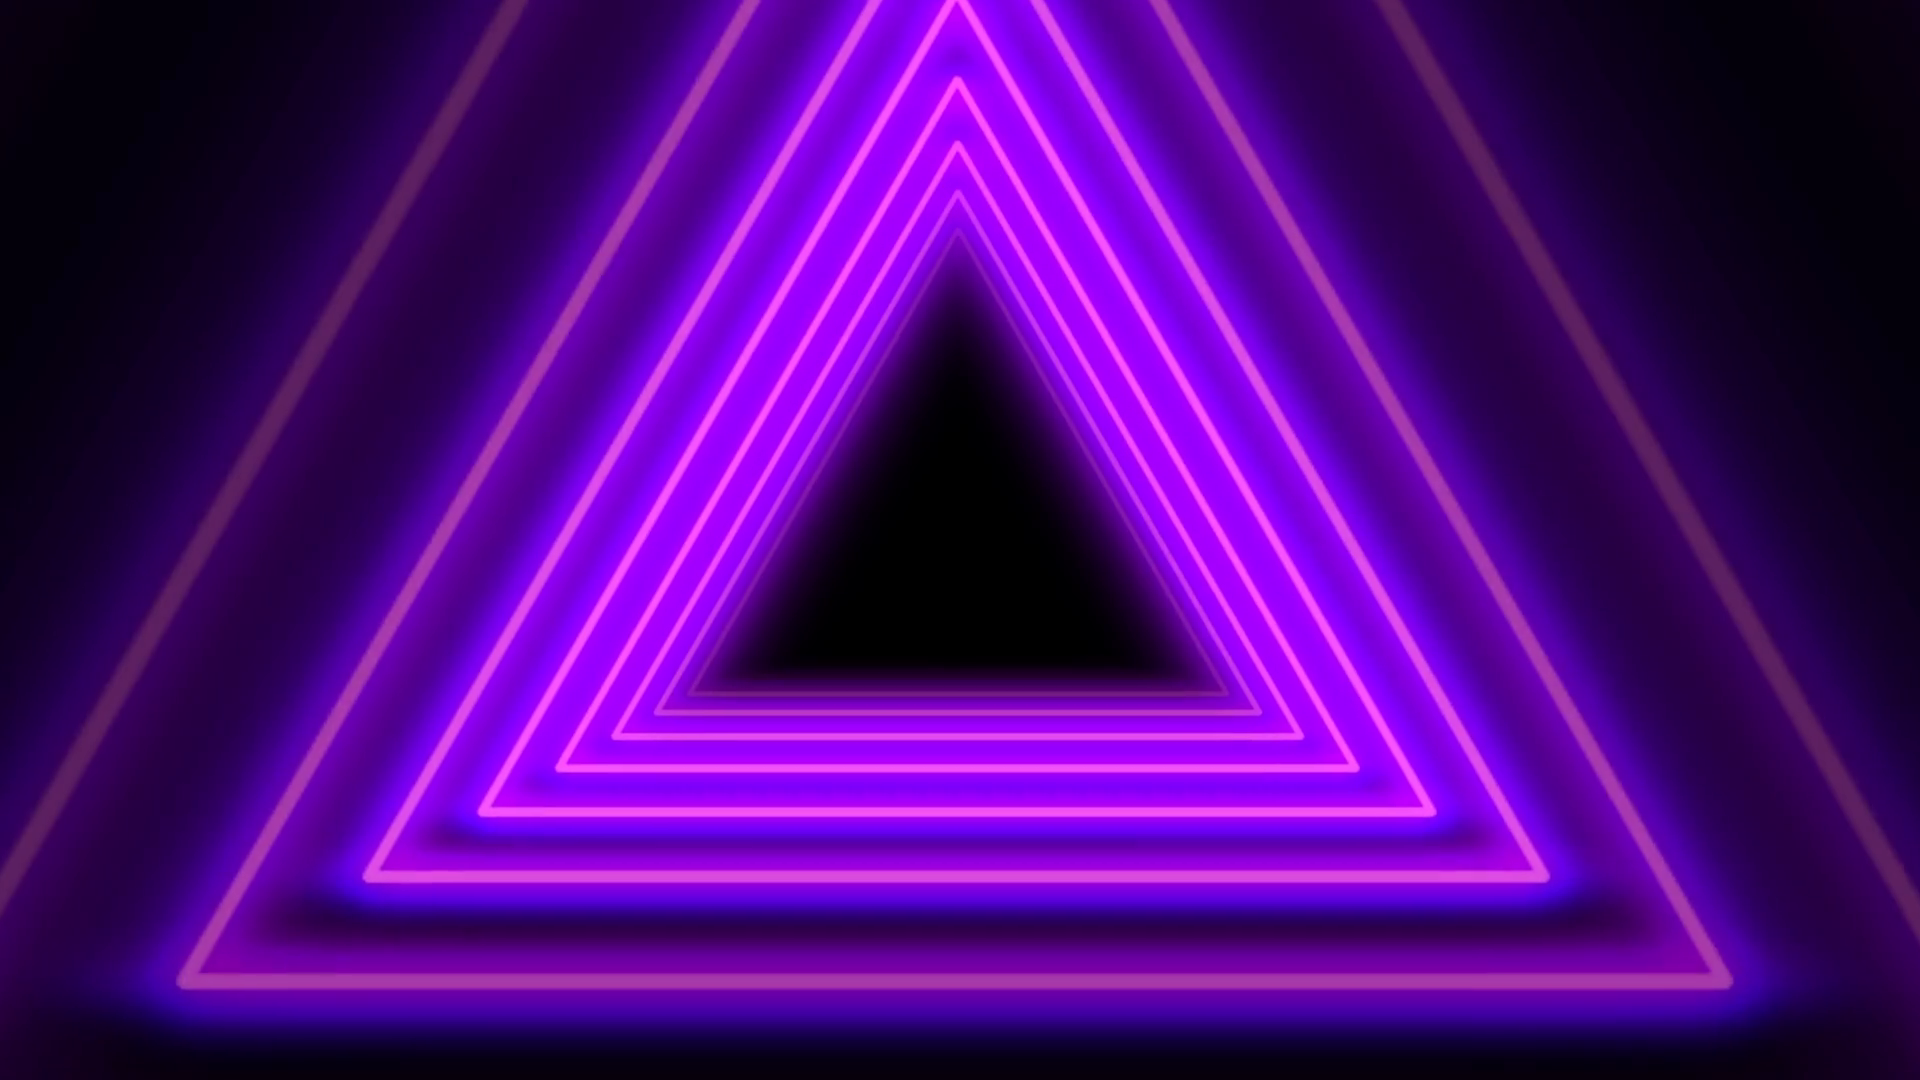 Beautiful Purple Neon Abstract Triangle Tunnel Seamless